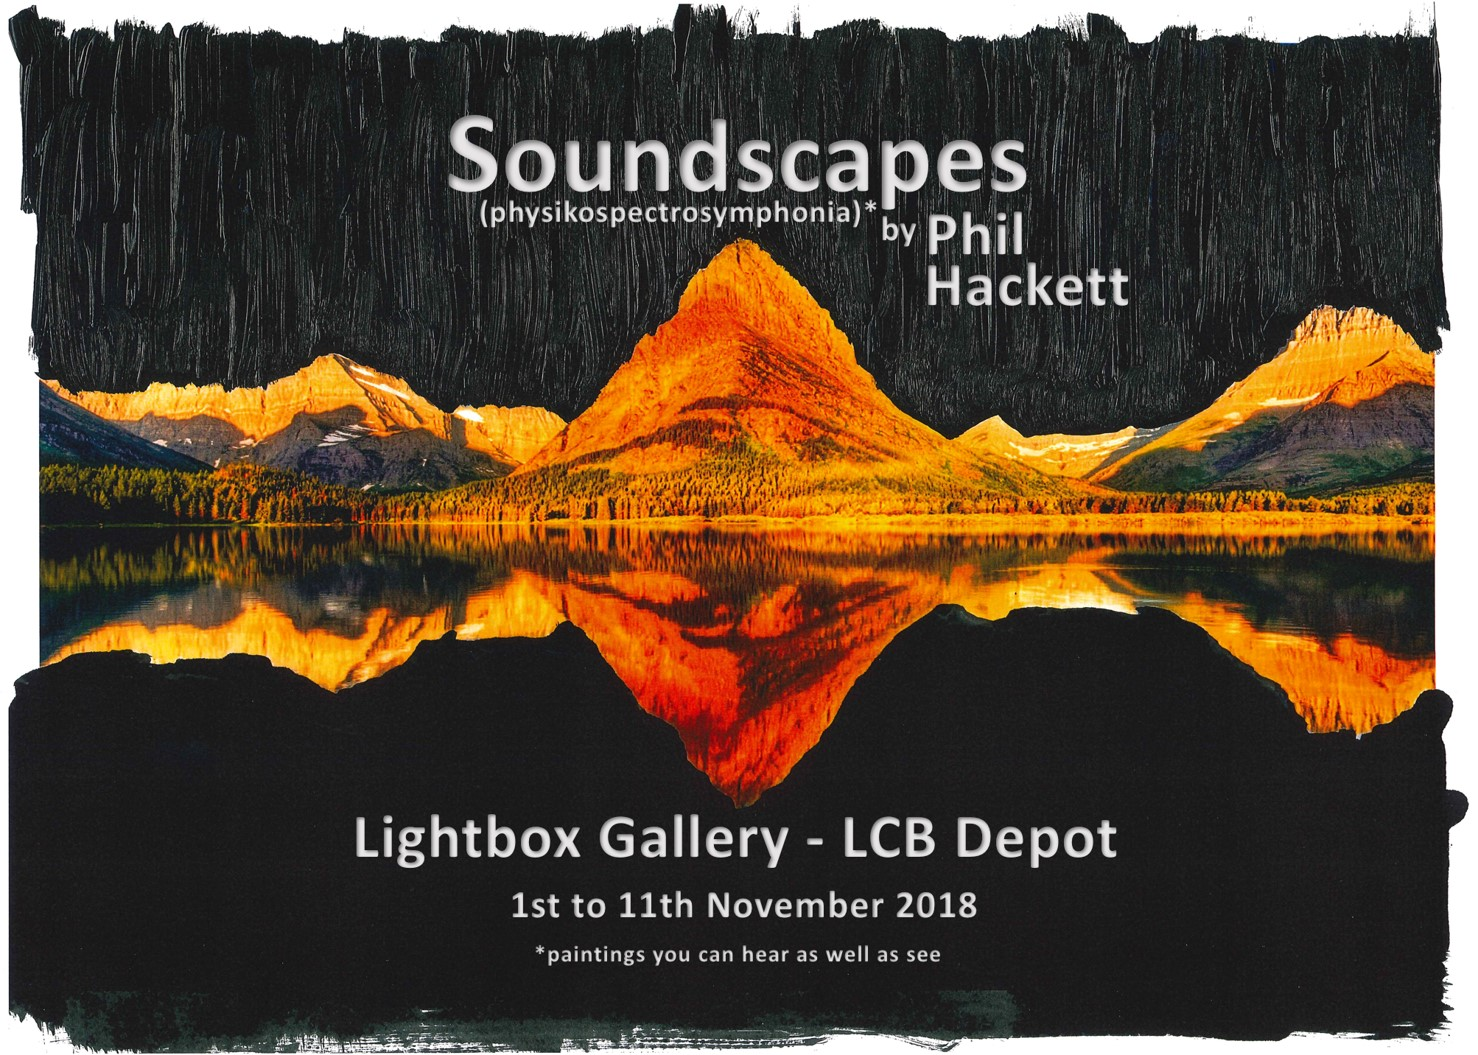 Phil Hackett's Soundscapes image